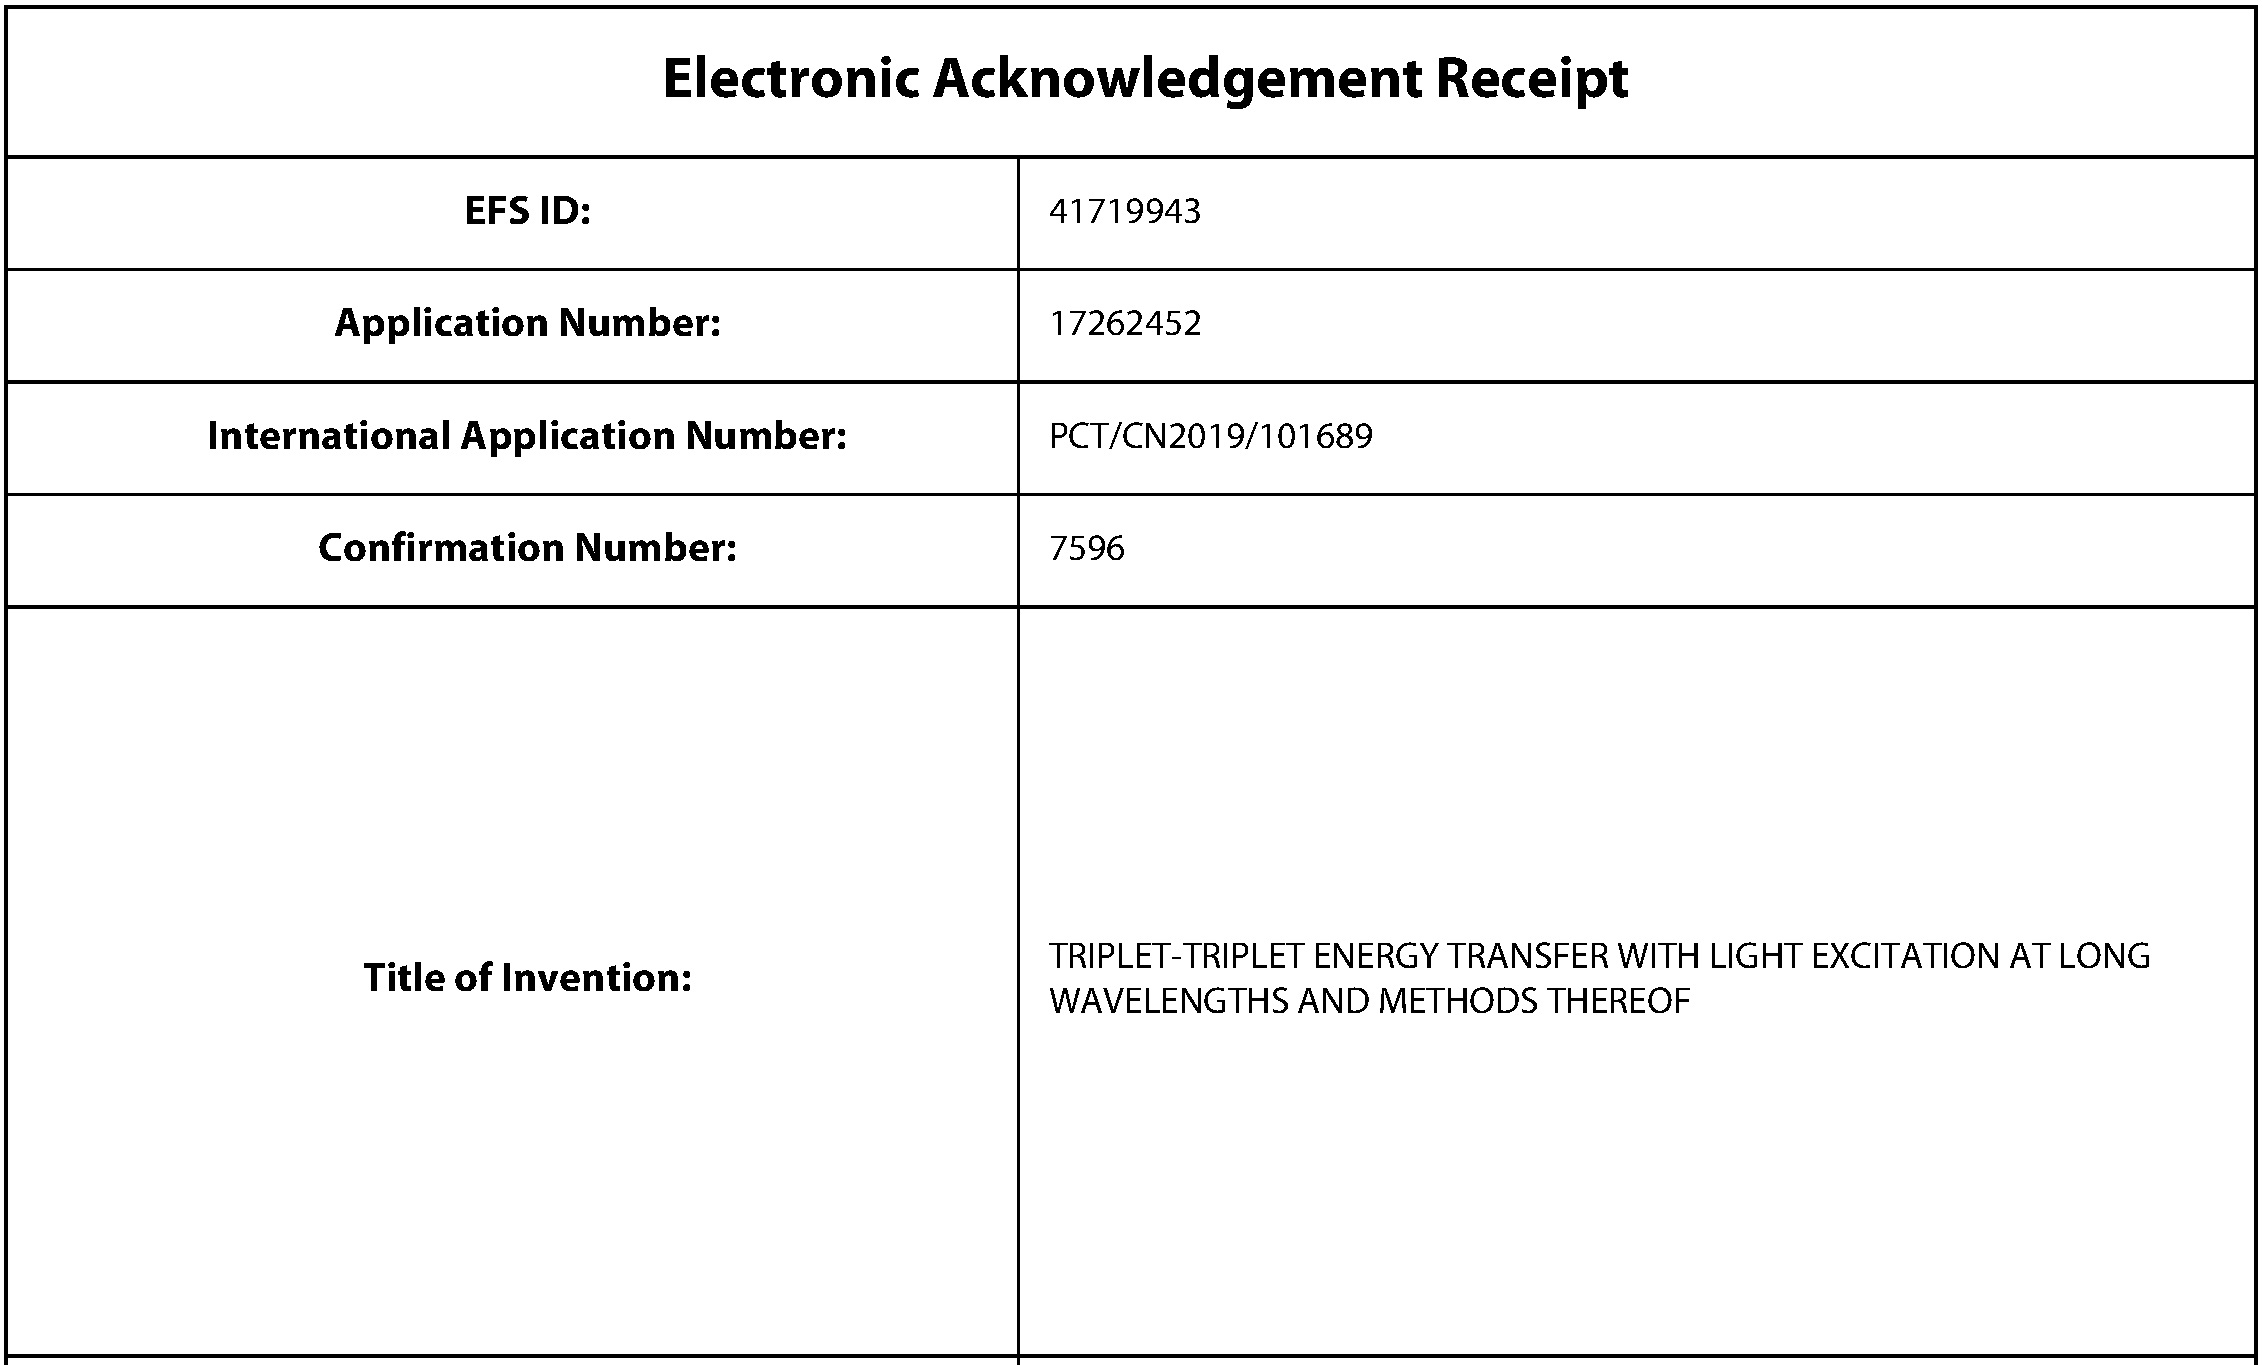 20210122 US Reg Appln as filed, E filing receipt